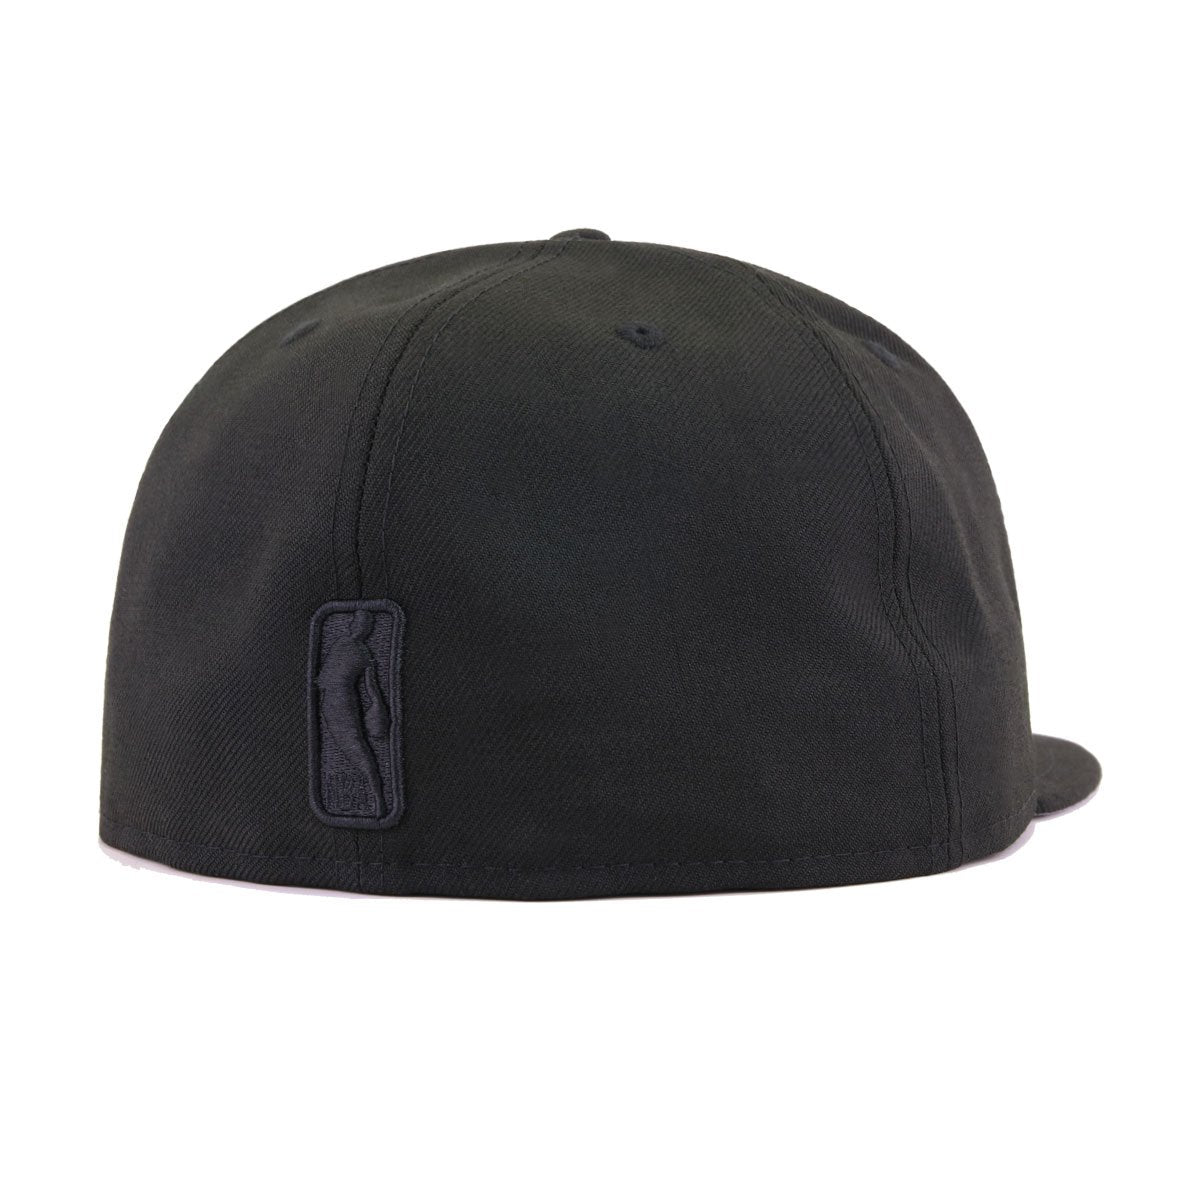 Los Angeles Lakers Black on Black New Era 59Fifty Fitted